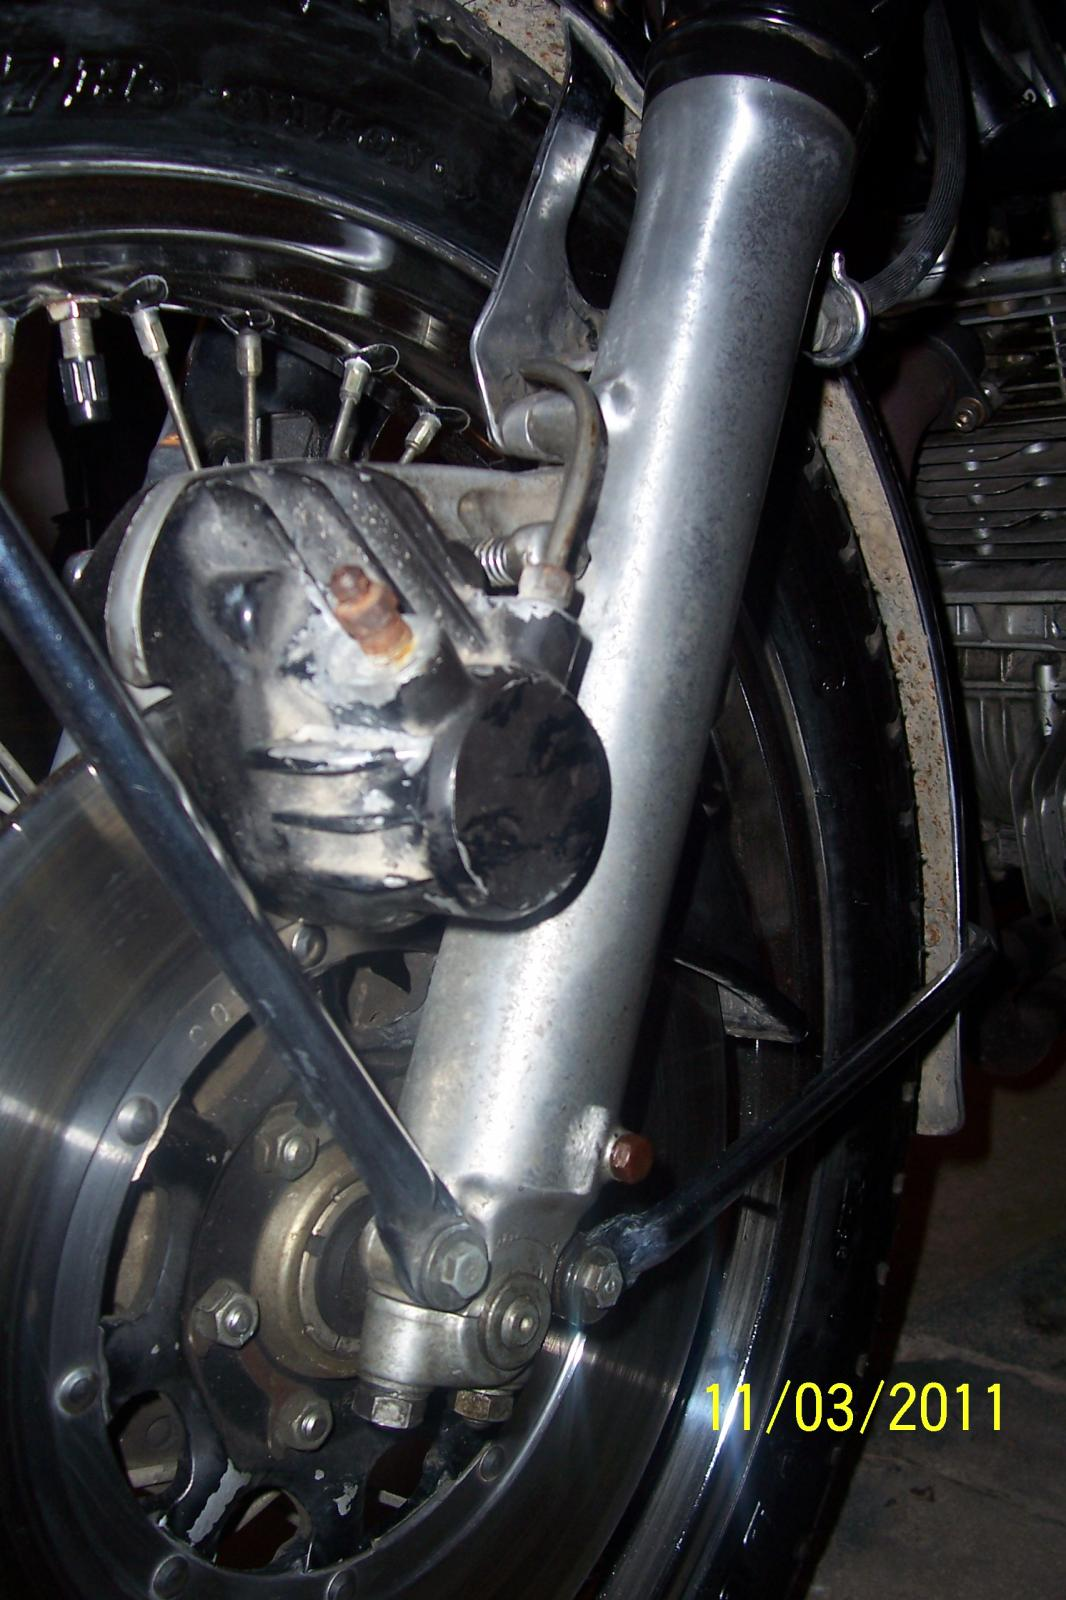 Click image for larger version.  Name:handle bars.jpg Views:6 Size:254.4 KB ID:2899